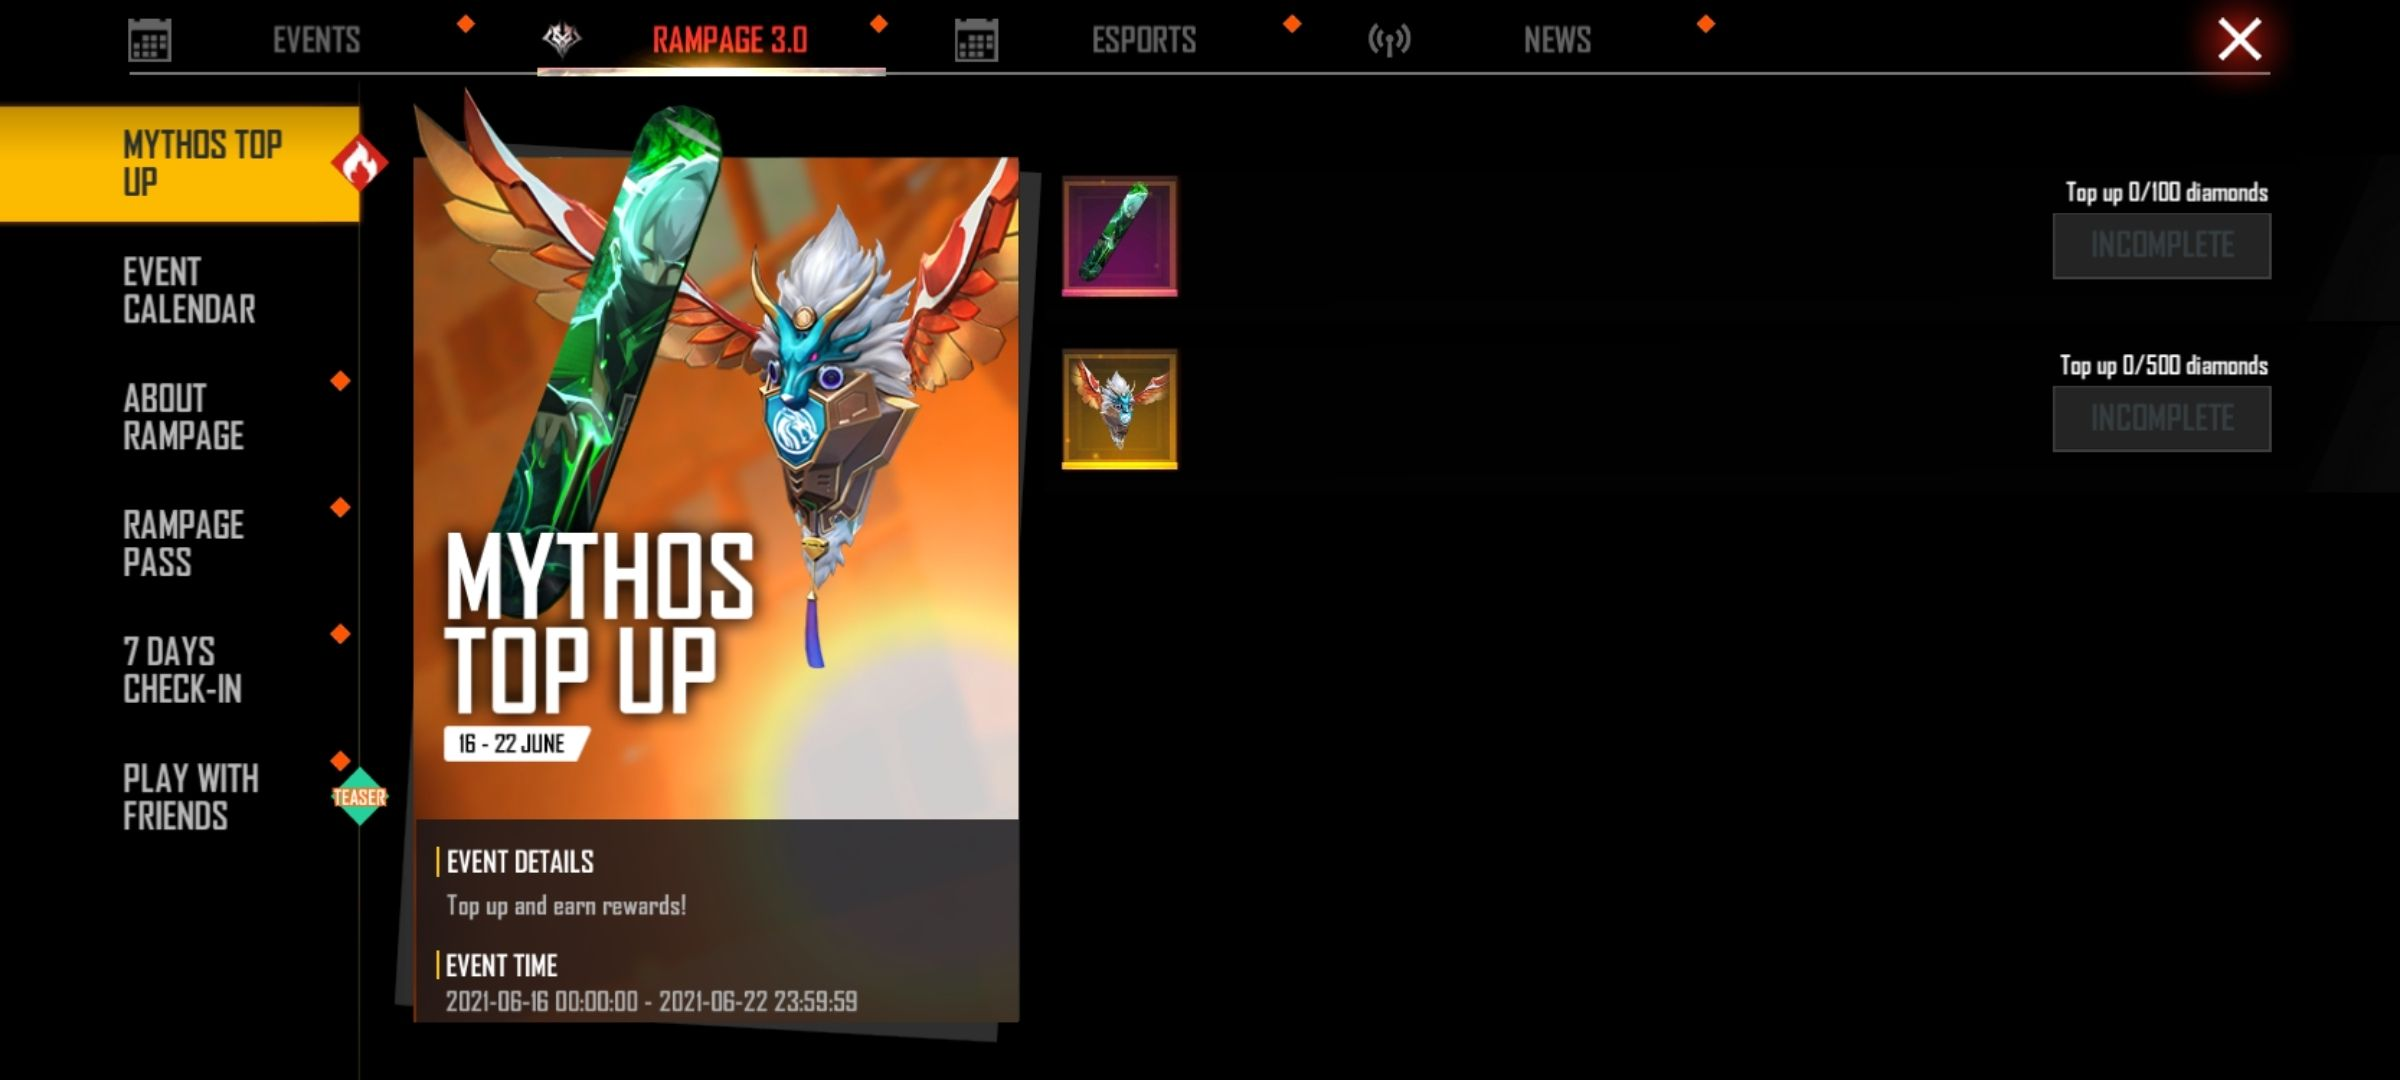 Free Fire Mythos Top Up event